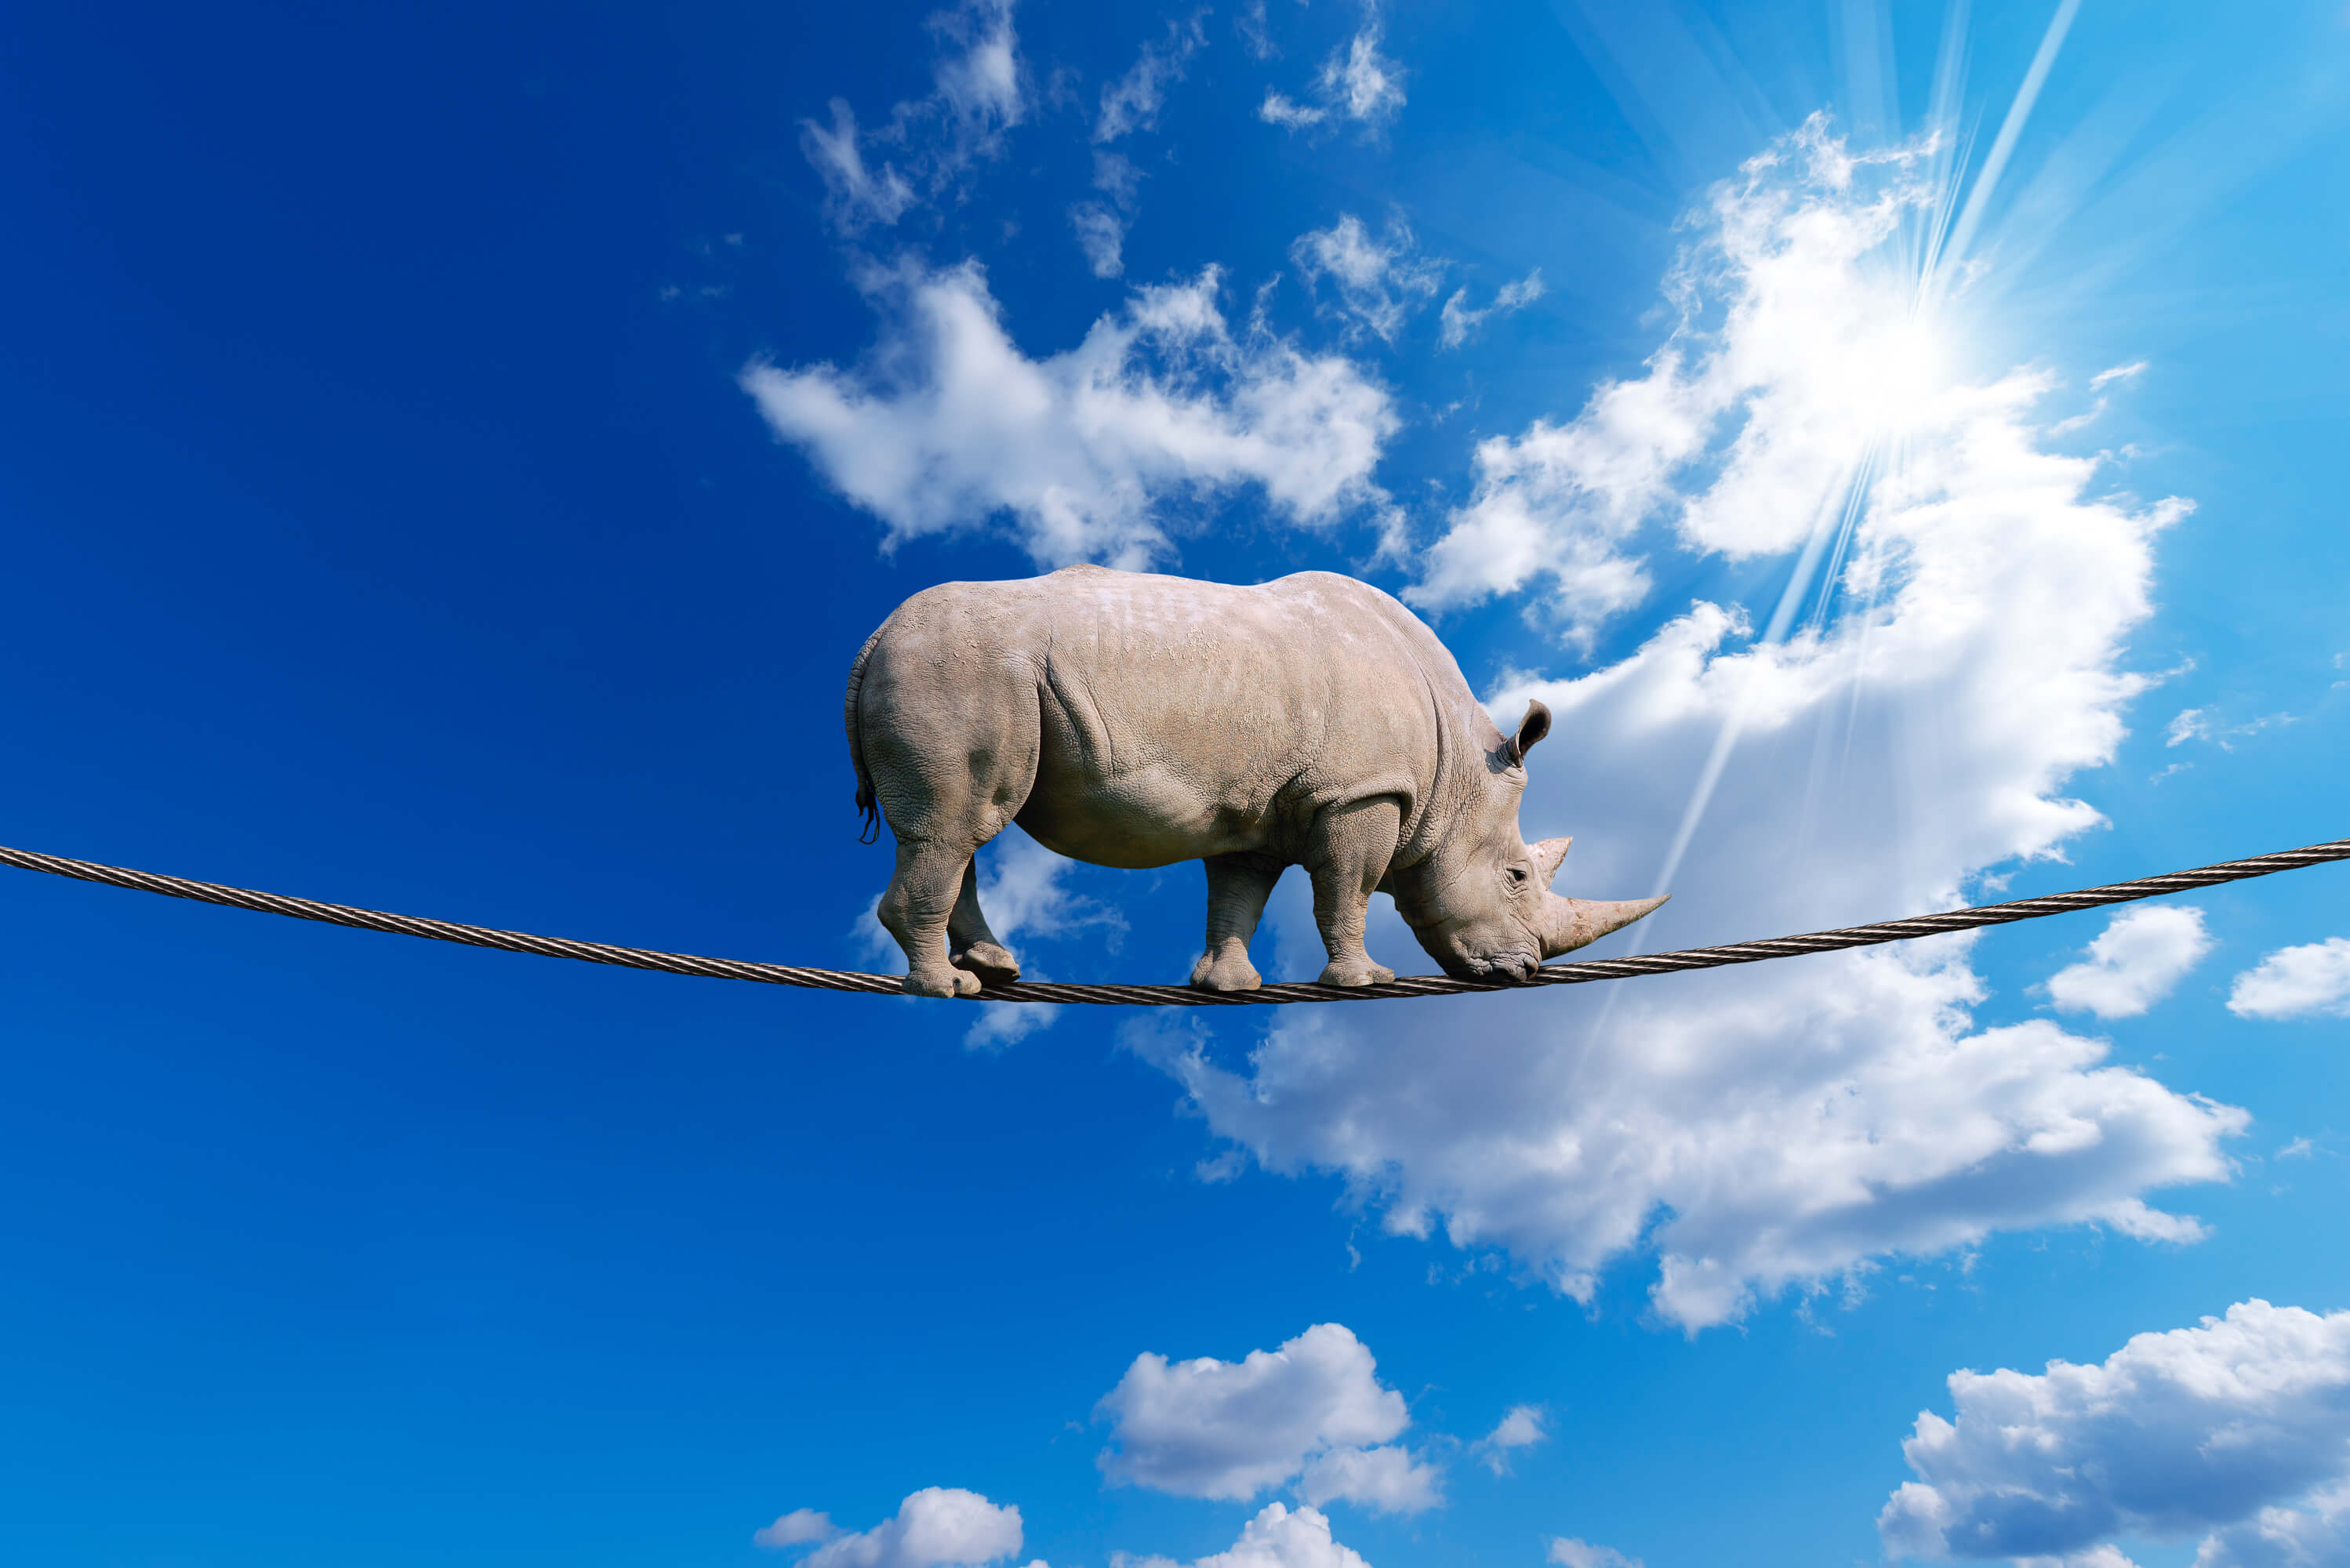 Image of Rhino on a rope